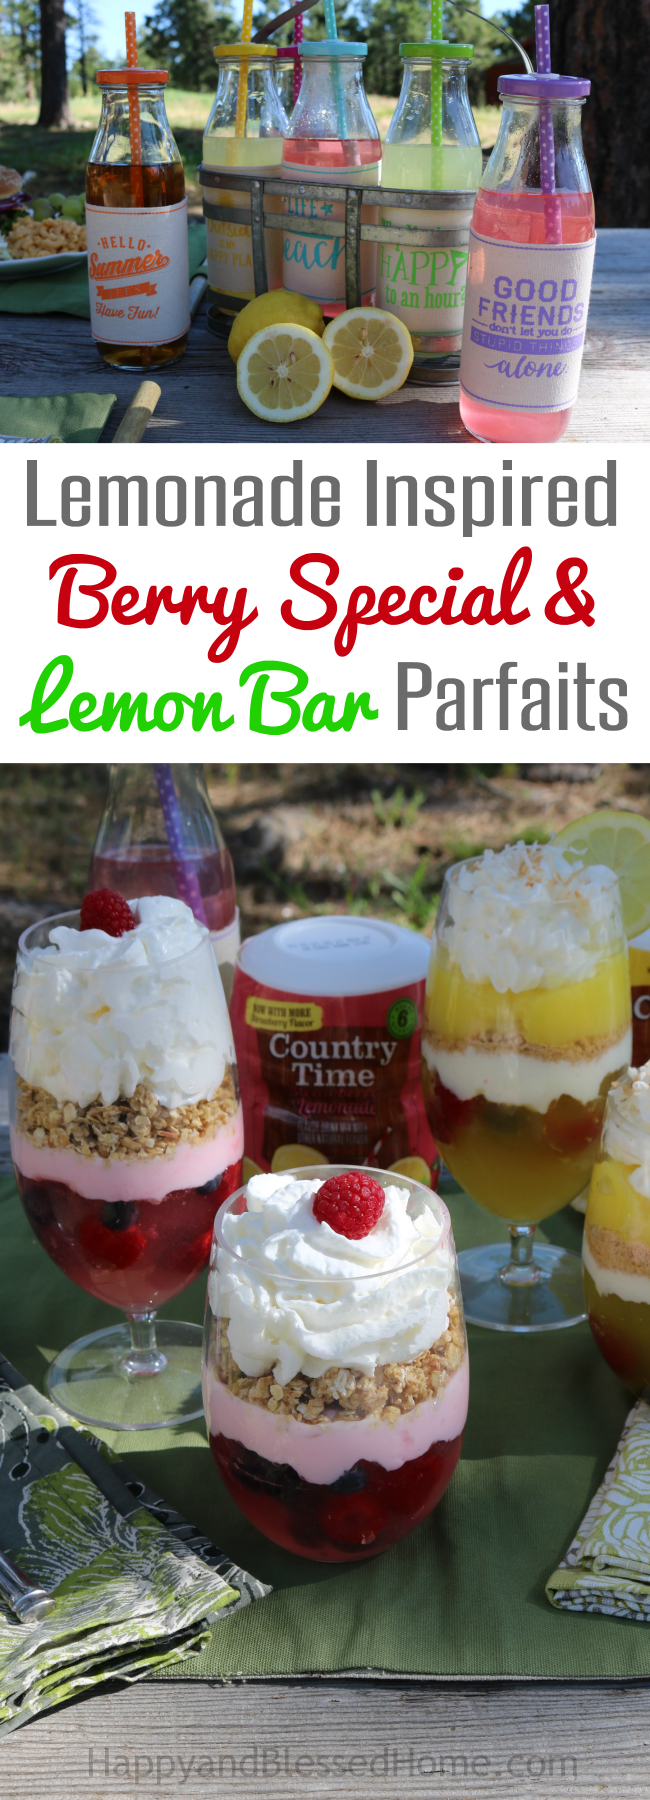 Lemonade Inspired Berry Special Parfait and Lemon Bar Parfait recipes by HappyandBlessedHome.com.jpg